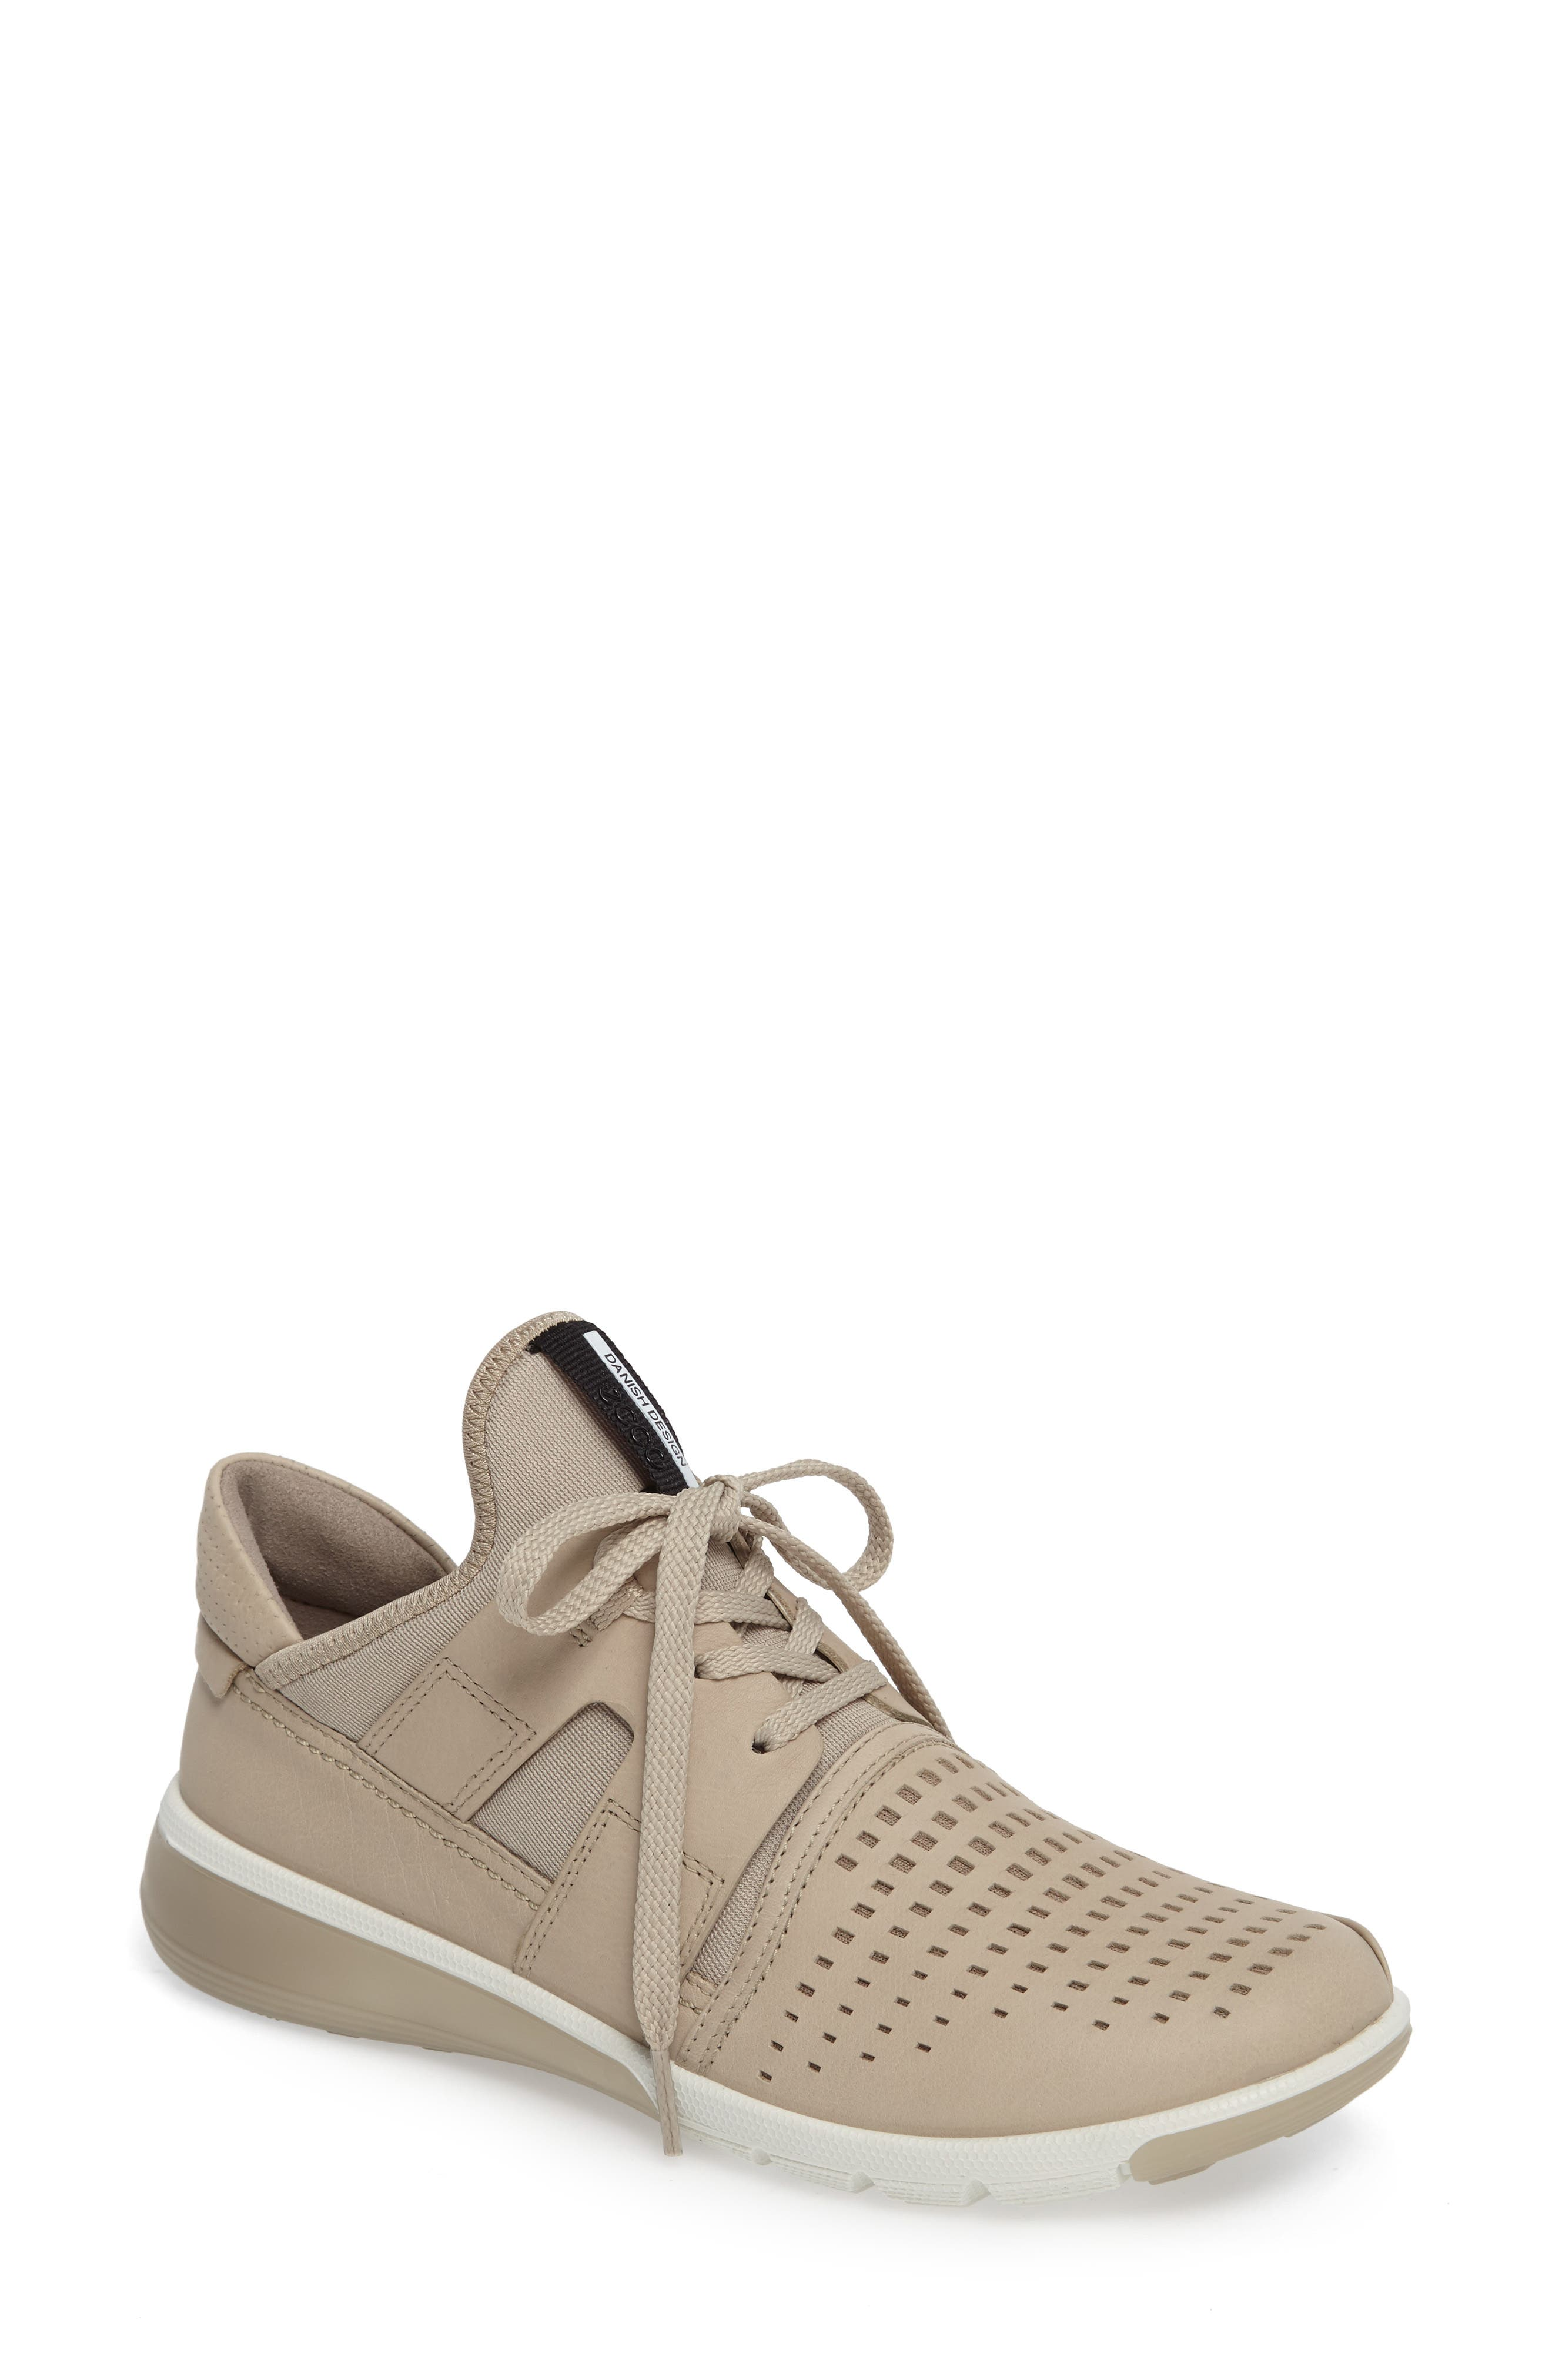 Intrinsic 2 Sneaker,                             Main thumbnail 1, color,                             Oyster Leather